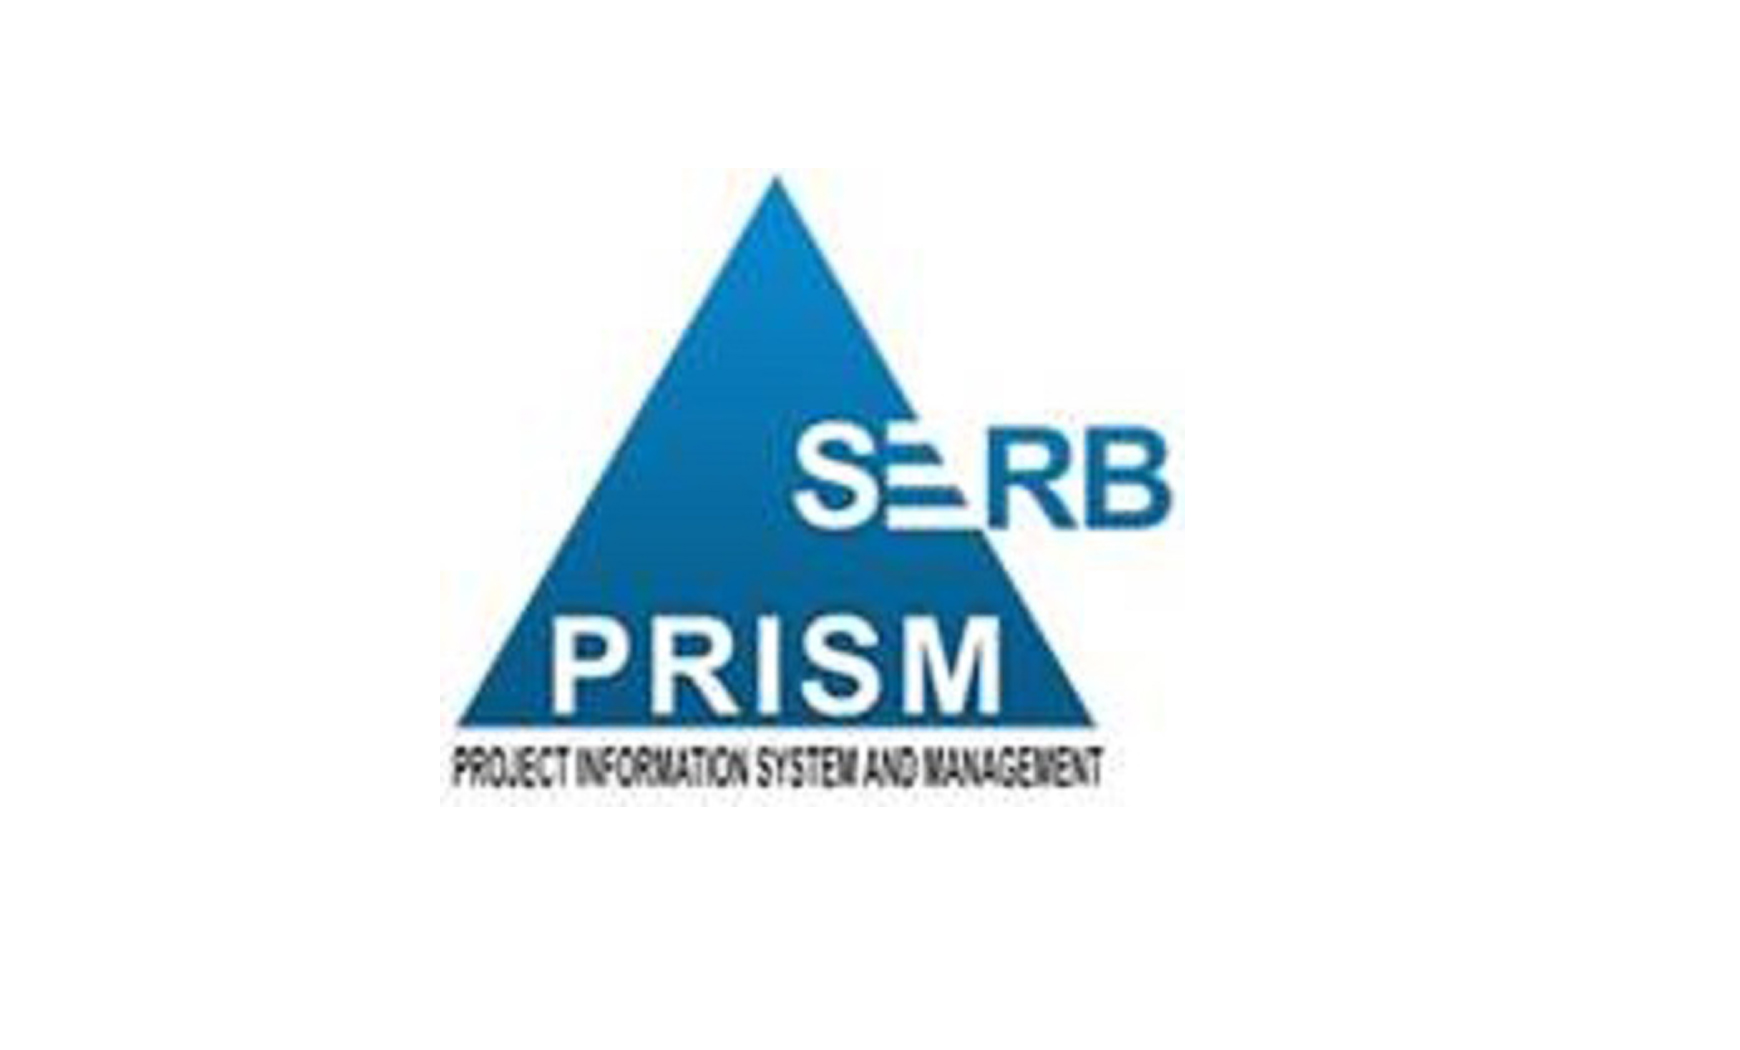 Portal to provide all-inclusive information on SERB sanctioned projects